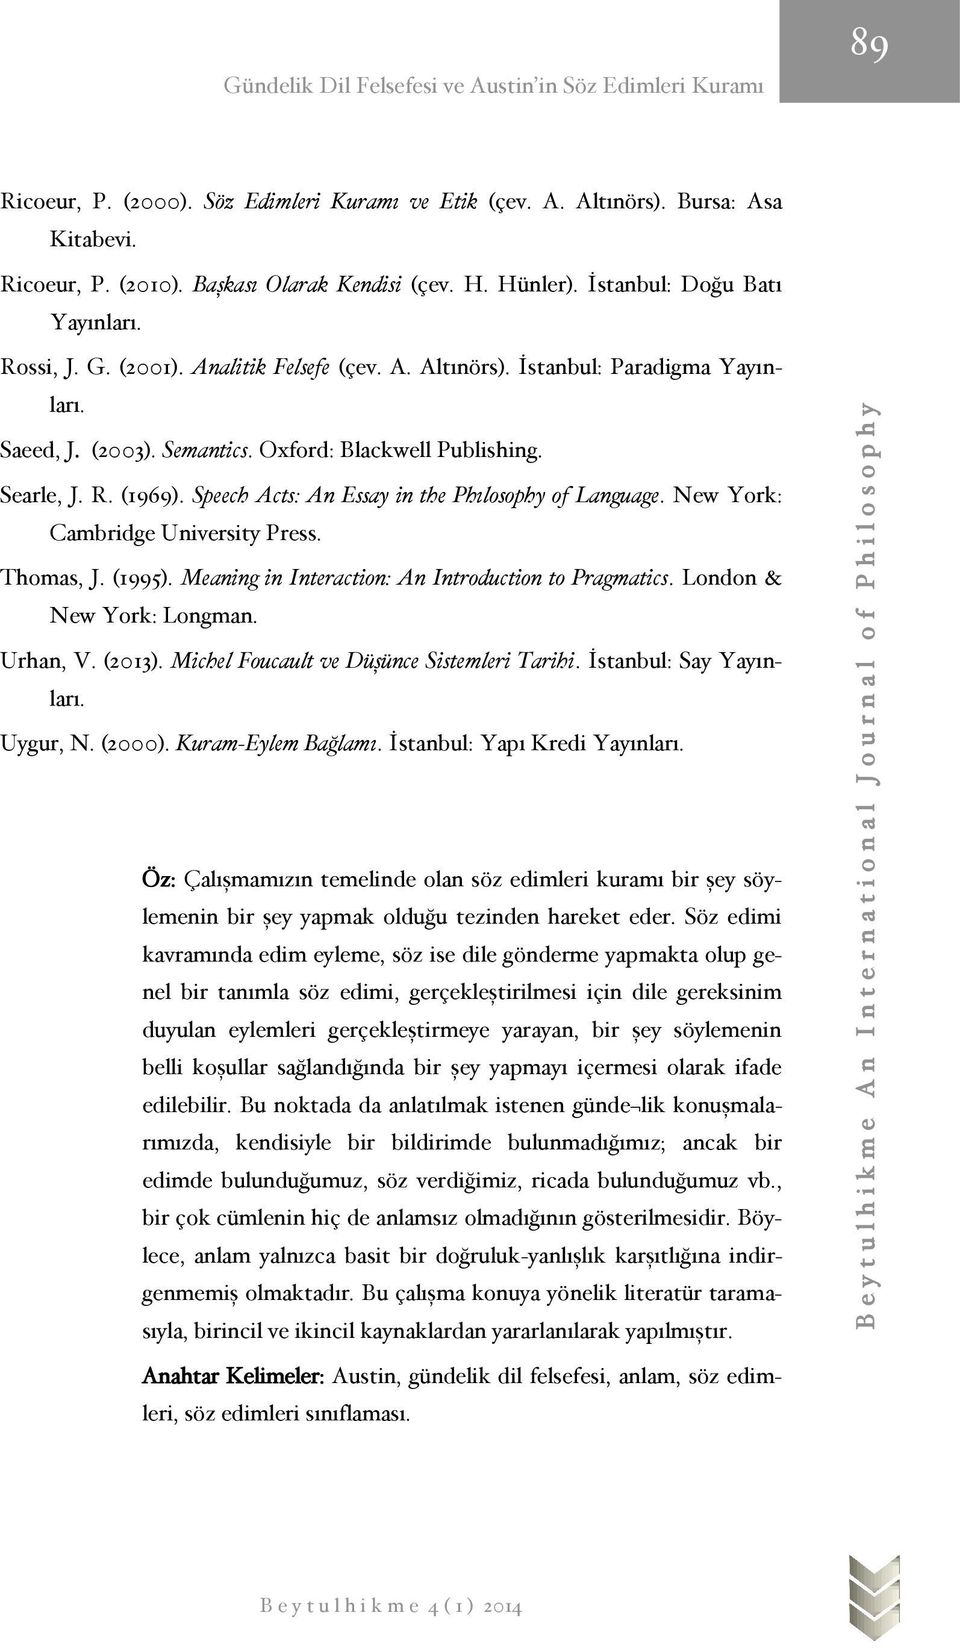 Speech Acts: An Essay in the Phılosophy of Language. New York: Cambridge University Press. Thomas, J. (1995). Meaning in Interaction: An Introduction to Pragmatics. London & New York: Longman.